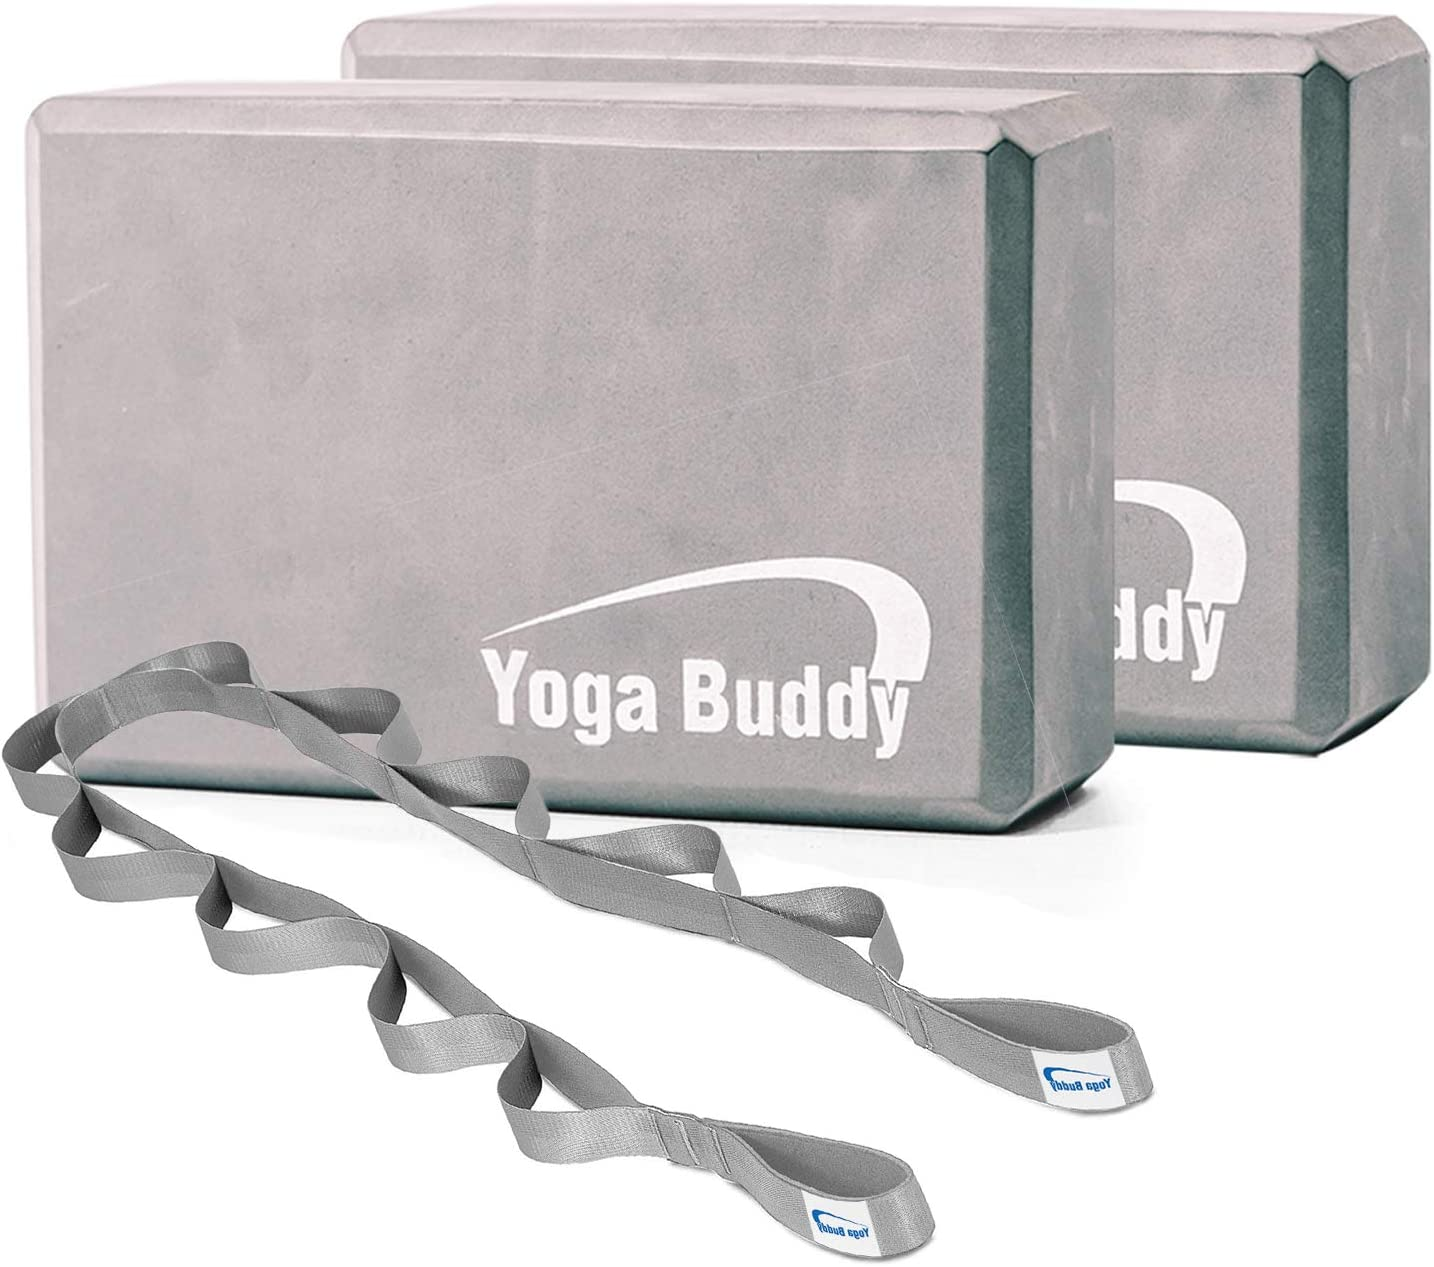 Amazon Com Roller Buddy Yoga Block Stretch Out Strap Set Yoga Blocks 2 Pack With Physical Therapy Equipment Stretch Band Yoga Bands Yoga Accessories Sports Outdoors